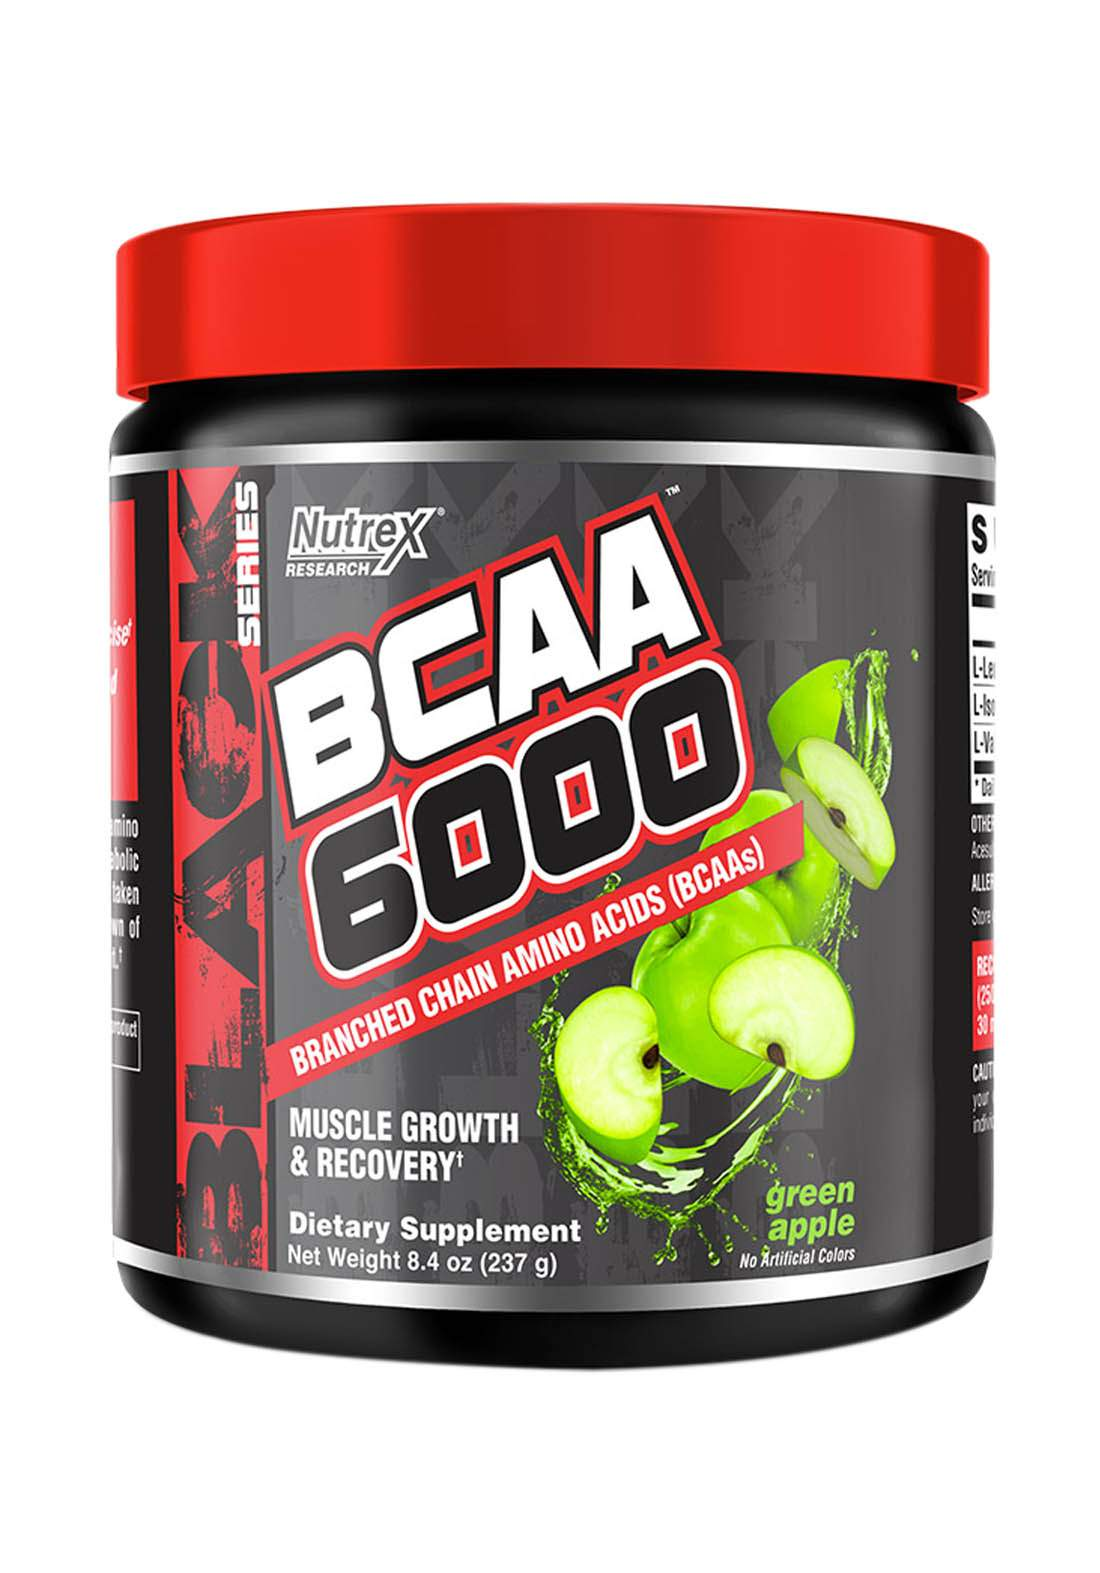 Nutrex Research BCAA 6000 Muscles Growth & Recovery Green Apple 30 Serv 255 Ml مكمل احماض امينية